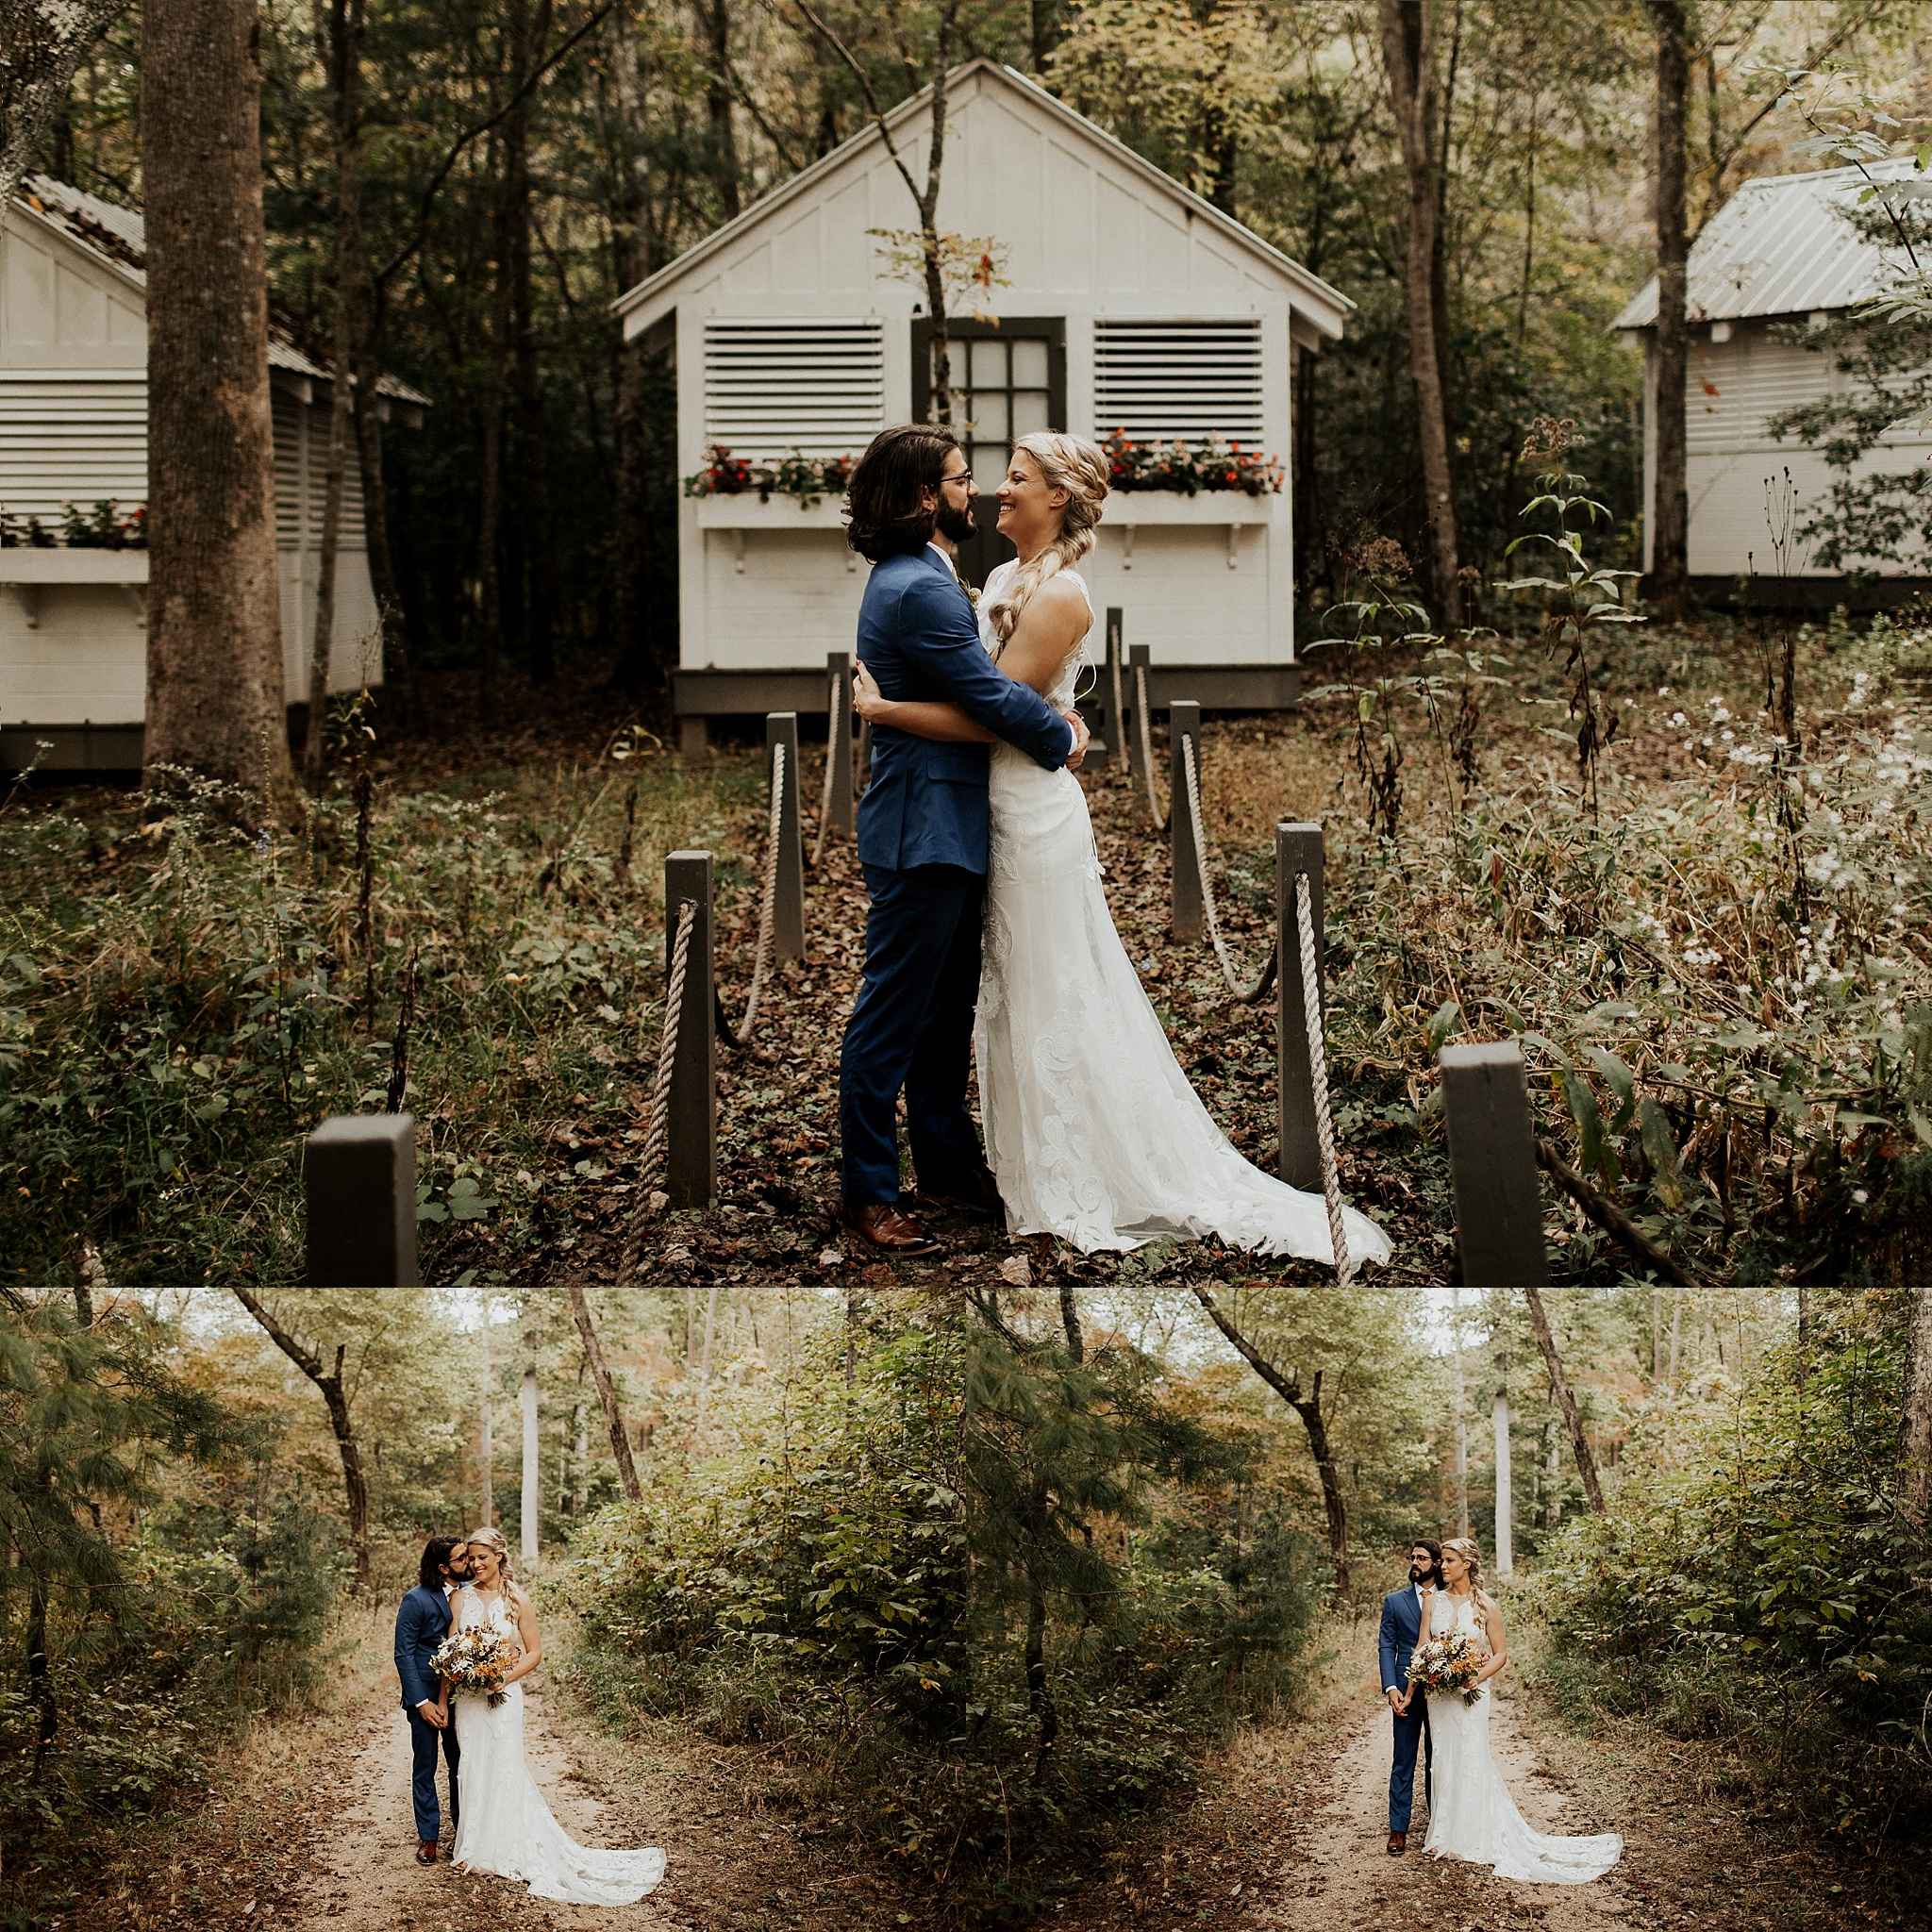 sugarboo_farms_intimate_mountain_wedding026.JPG